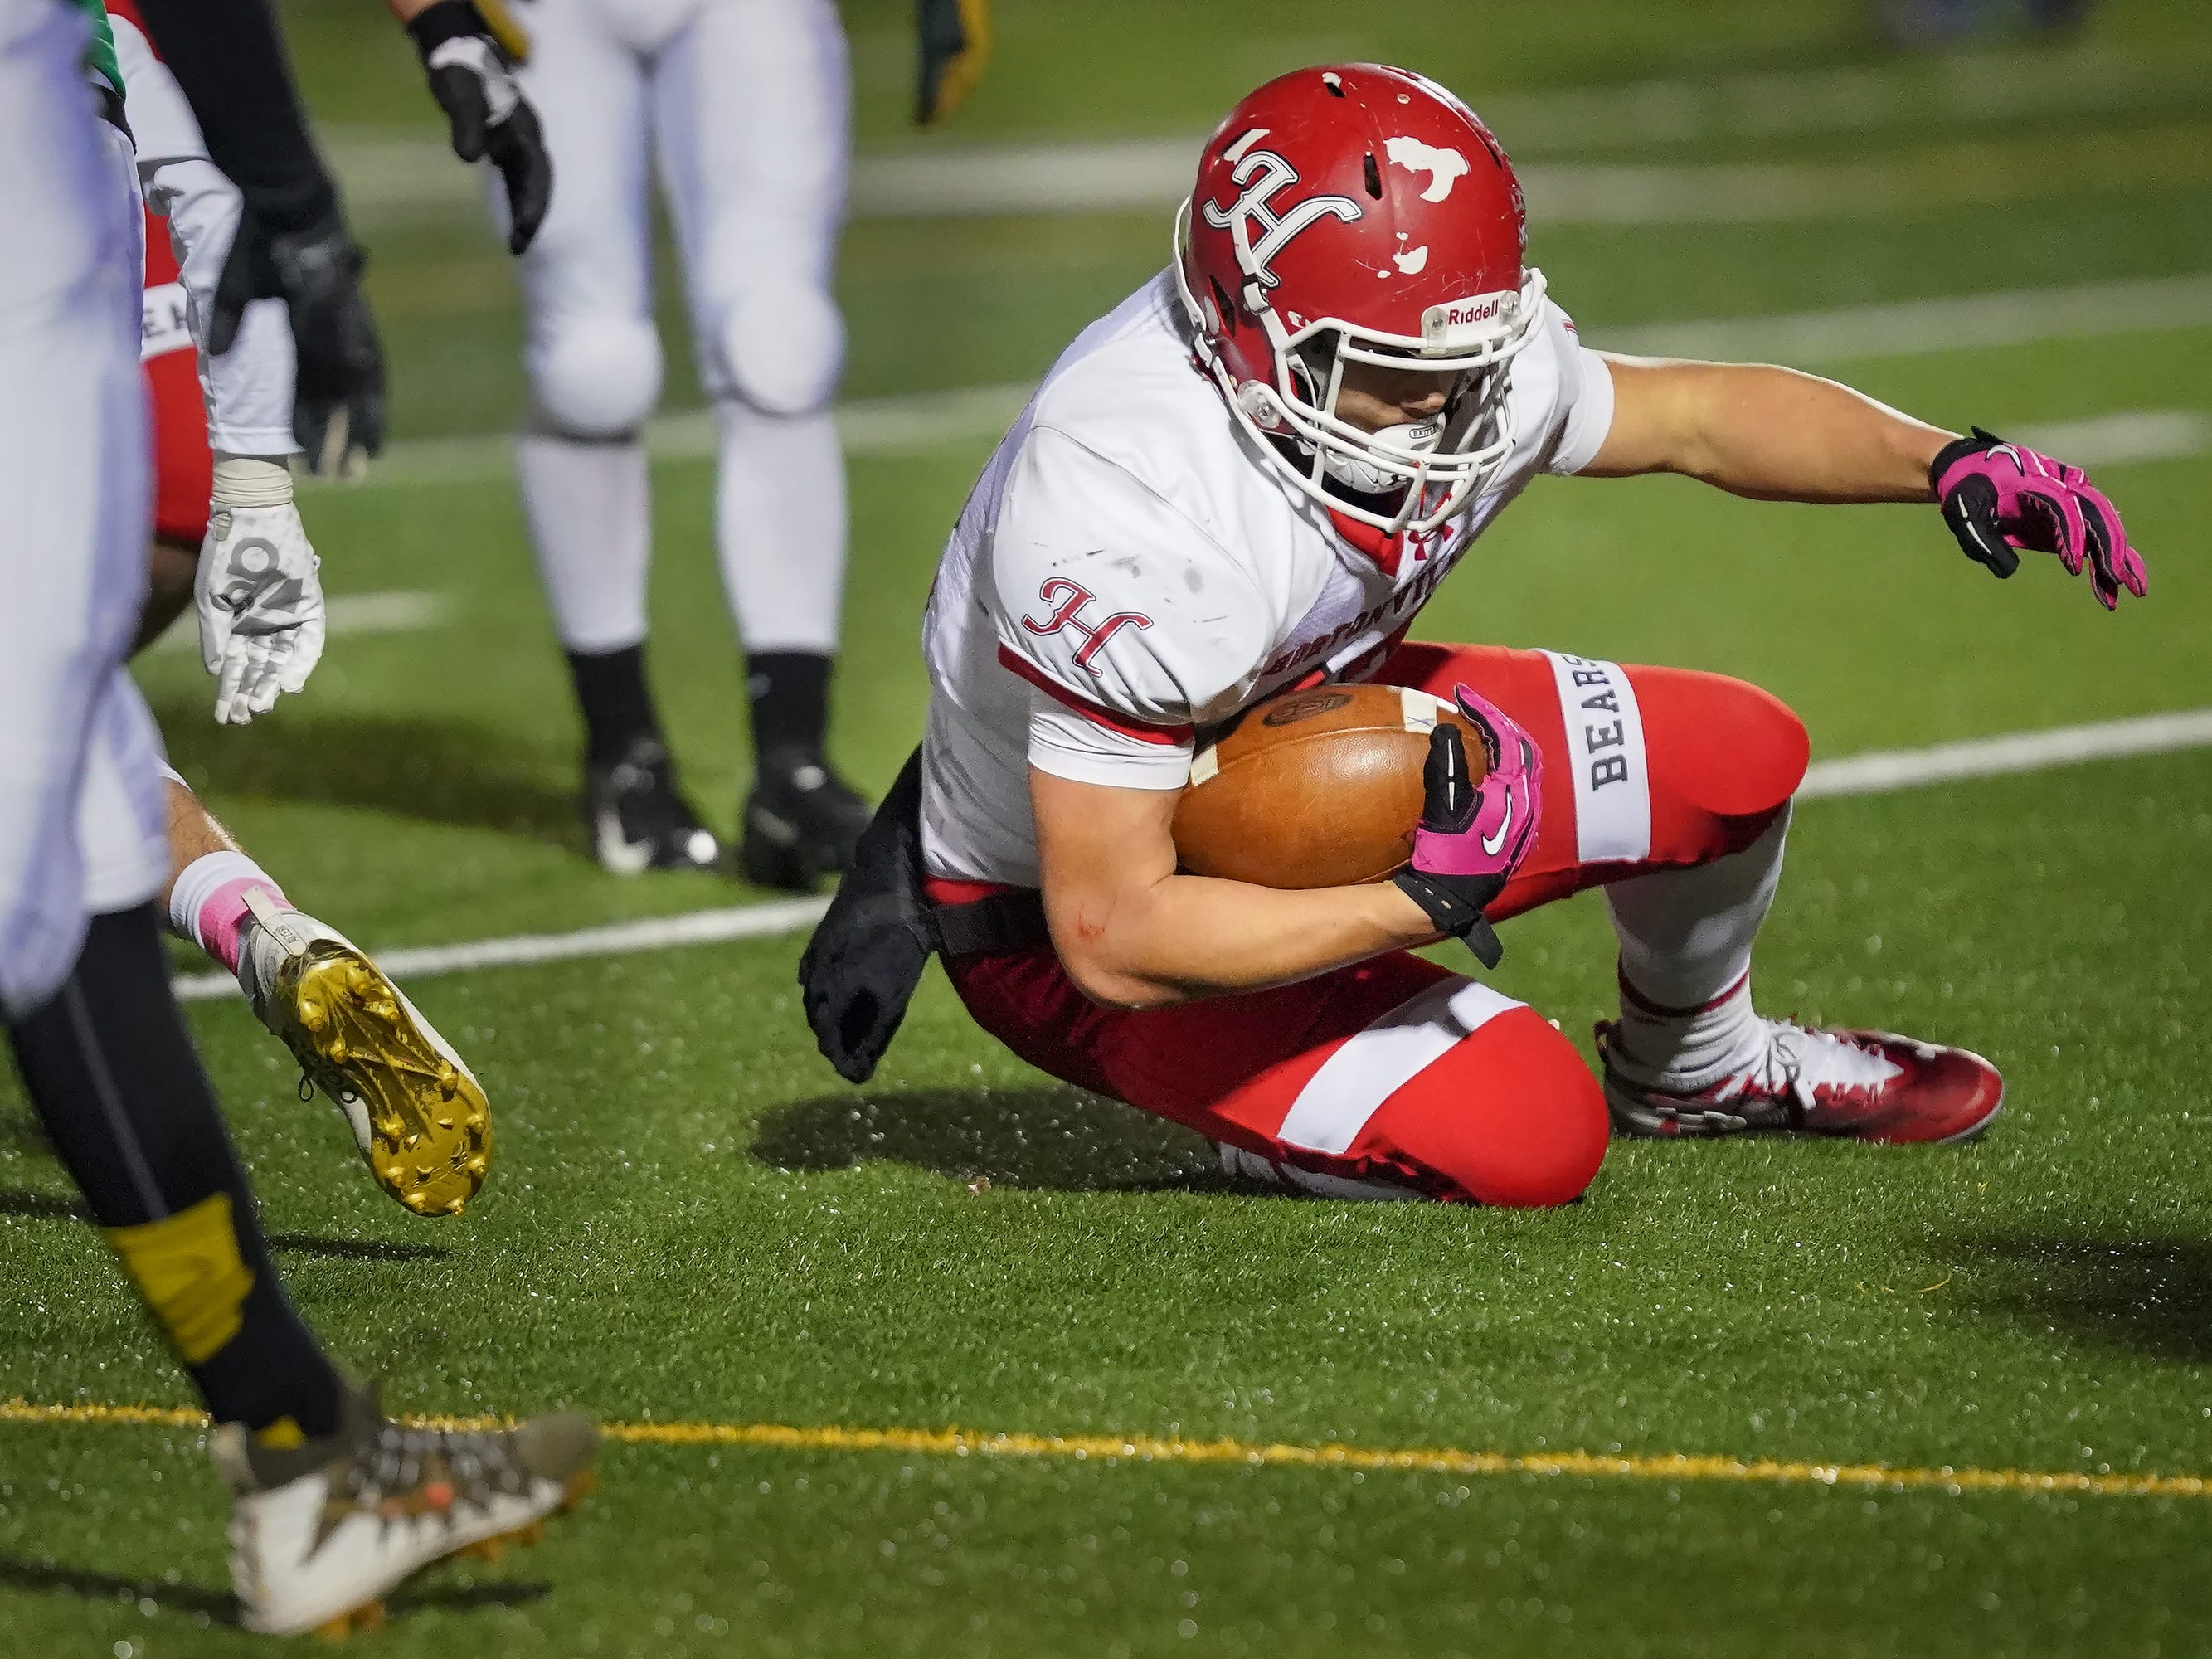 Jose Concepcion (22) of Hortonville breaks through the line for a touchdown. The Oshkosh North Spartans hosted the Hortonville Polar Bears in an FVA-South conference matchup Friday evening, October 12, 2018 at J. J. Keller Field at Titan Stadium.